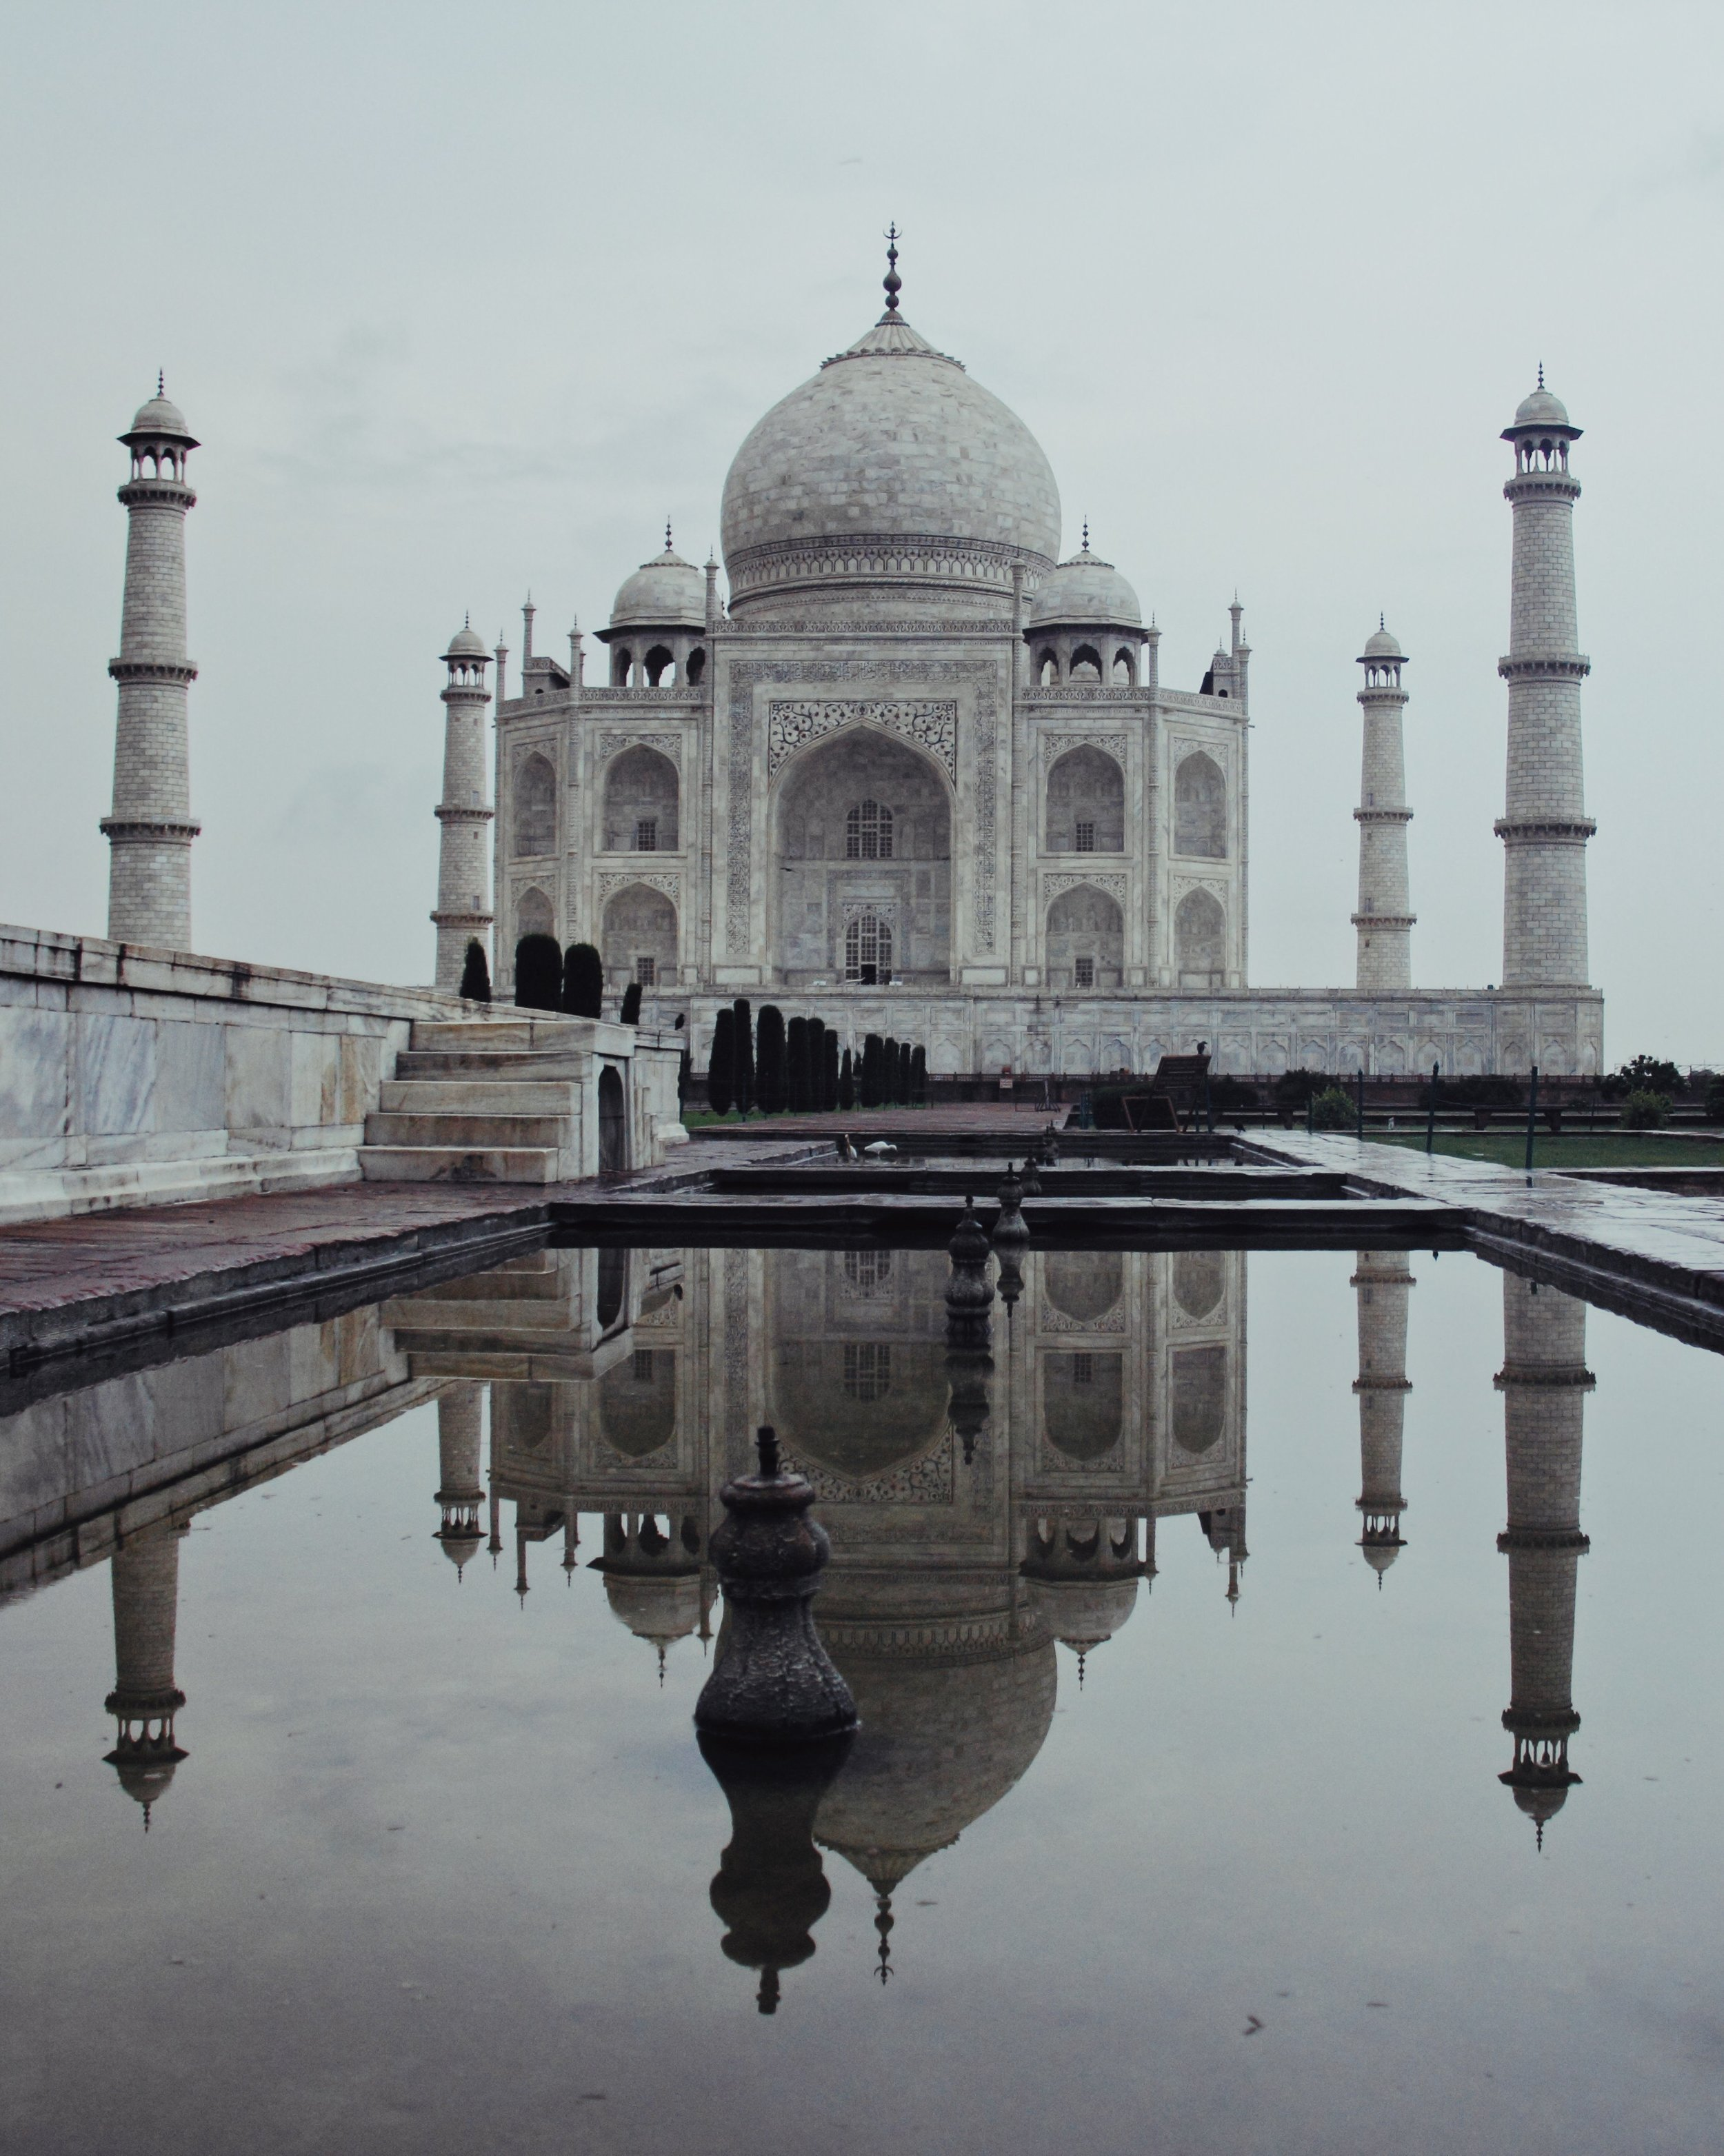 The Taj Mahal in Agra is made of ivory-white marble. It is a mausoleum commissioned by the Mughal Emperor Shah Jahan to house the tomb of his favourite wife Mumtaz Mahal, who was a Persian princess that passed away while giving birth to their 14th child.